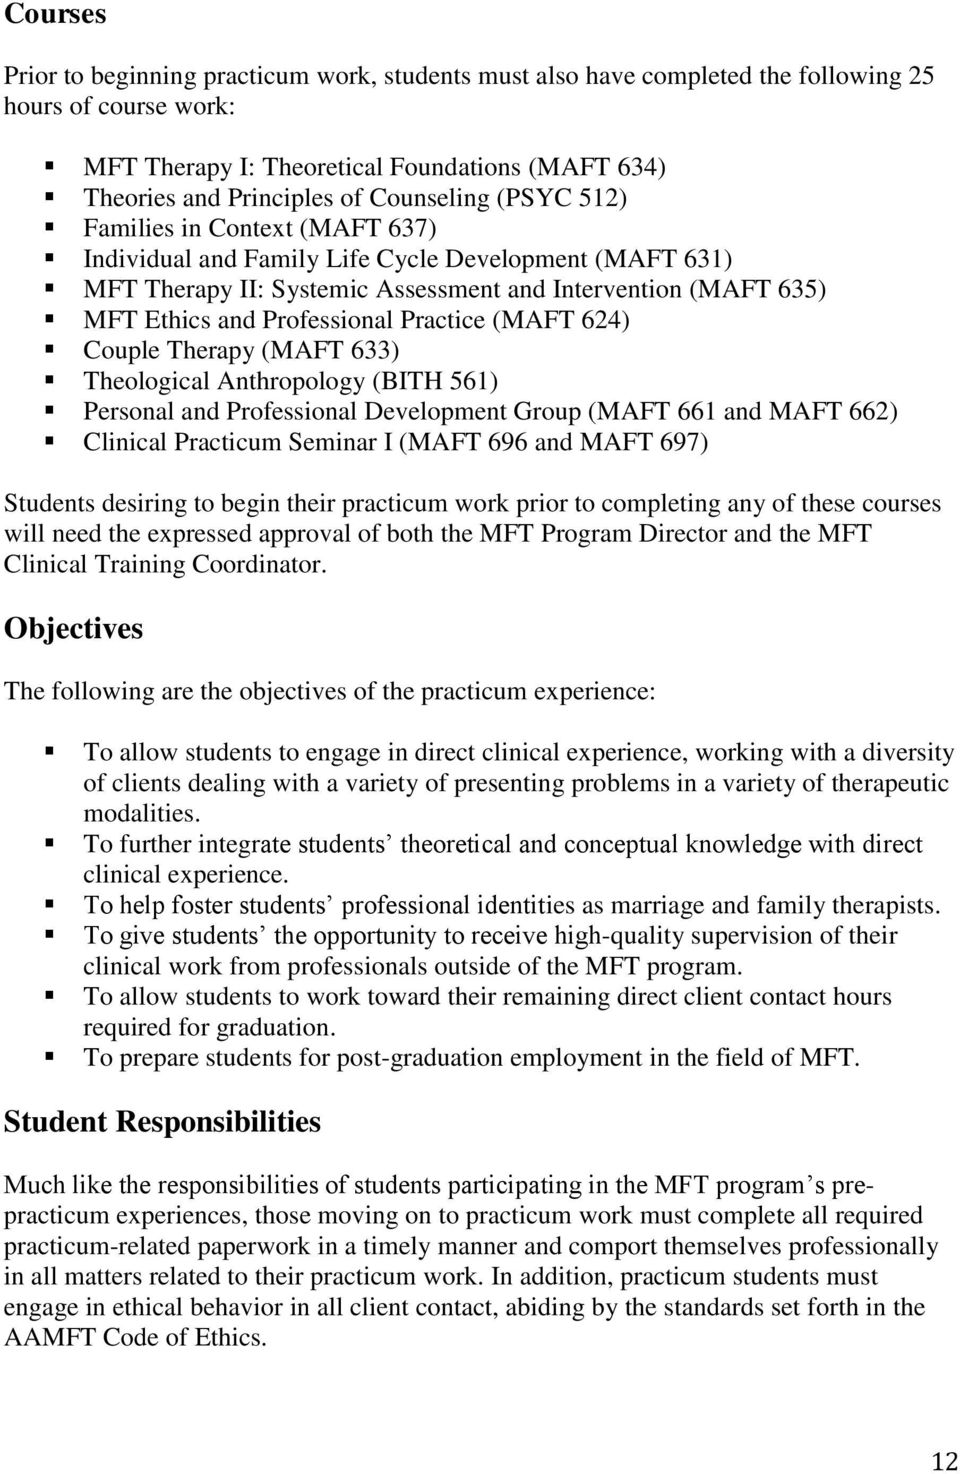 Professional Practice (MAFT 624) Couple Therapy (MAFT 633) Theological Anthropology (BITH 561) Personal and Professional Development Group (MAFT 661 and MAFT 662) Clinical Practicum Seminar I (MAFT